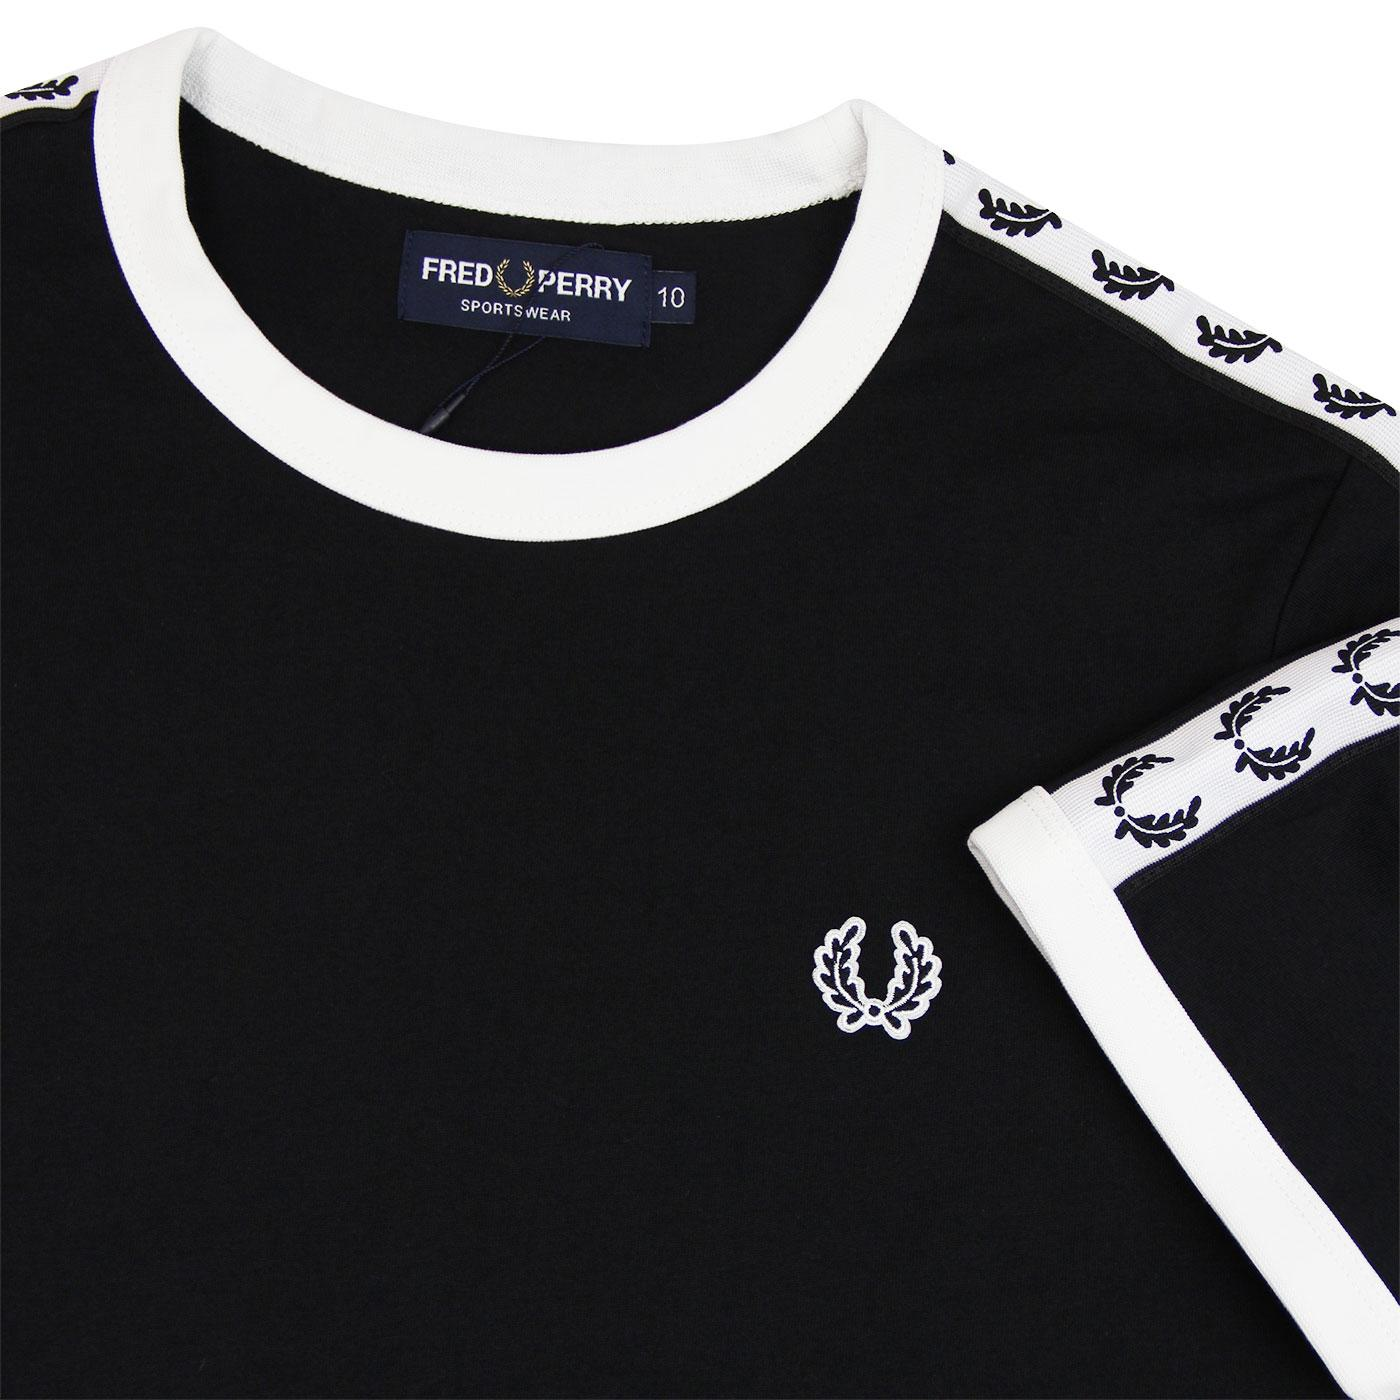 FRED PERRY Retro Taped Laurel Contrast Ringer Tee BLACK